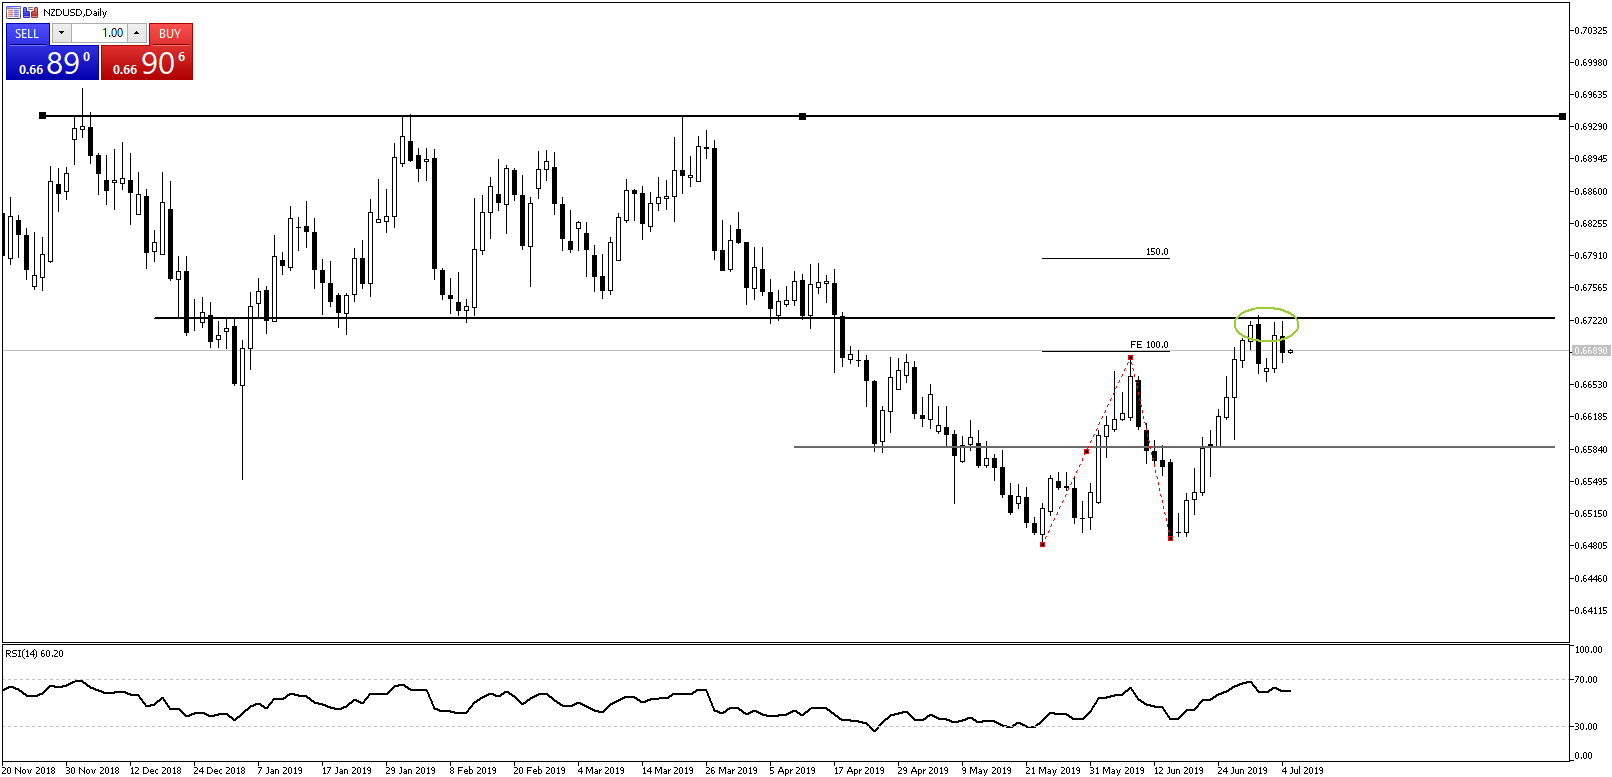 Chart of the Day - July 5, 2019 - NZDUSD daily